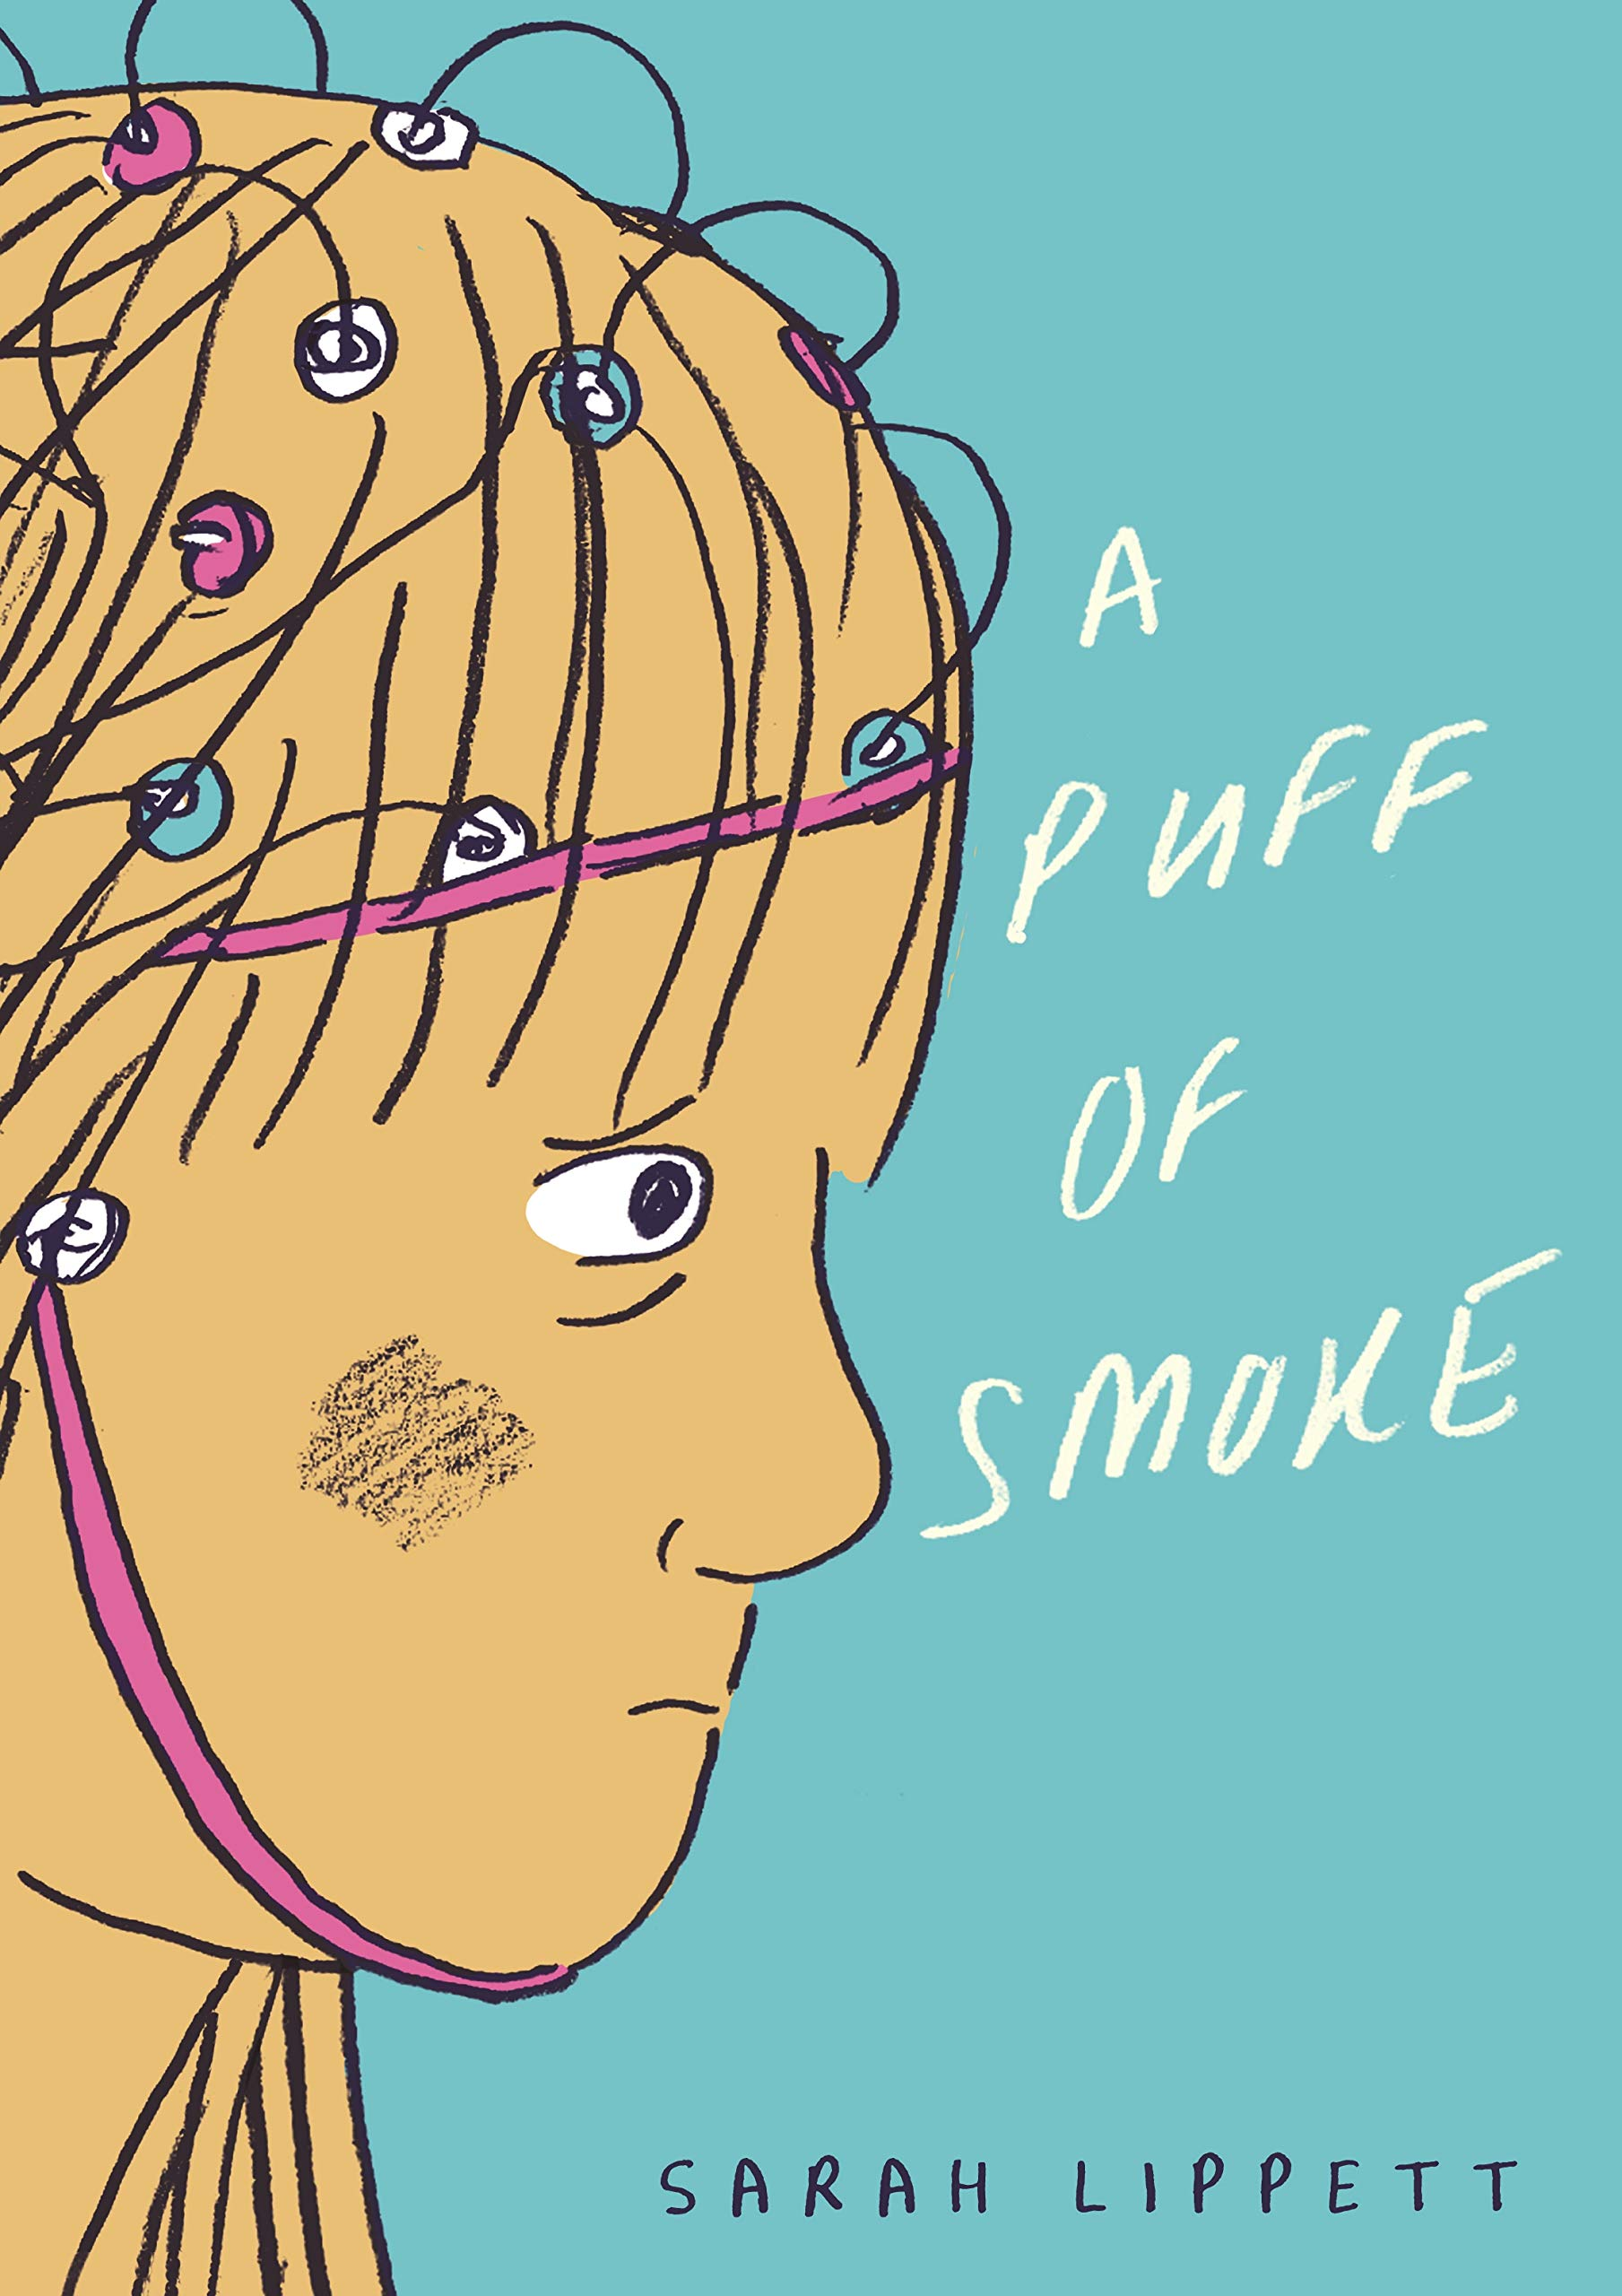 A Puff of Smoke - Sarah Lippett's Touching Memoir of Childhood Illness is a Tribute to Family and Resilience